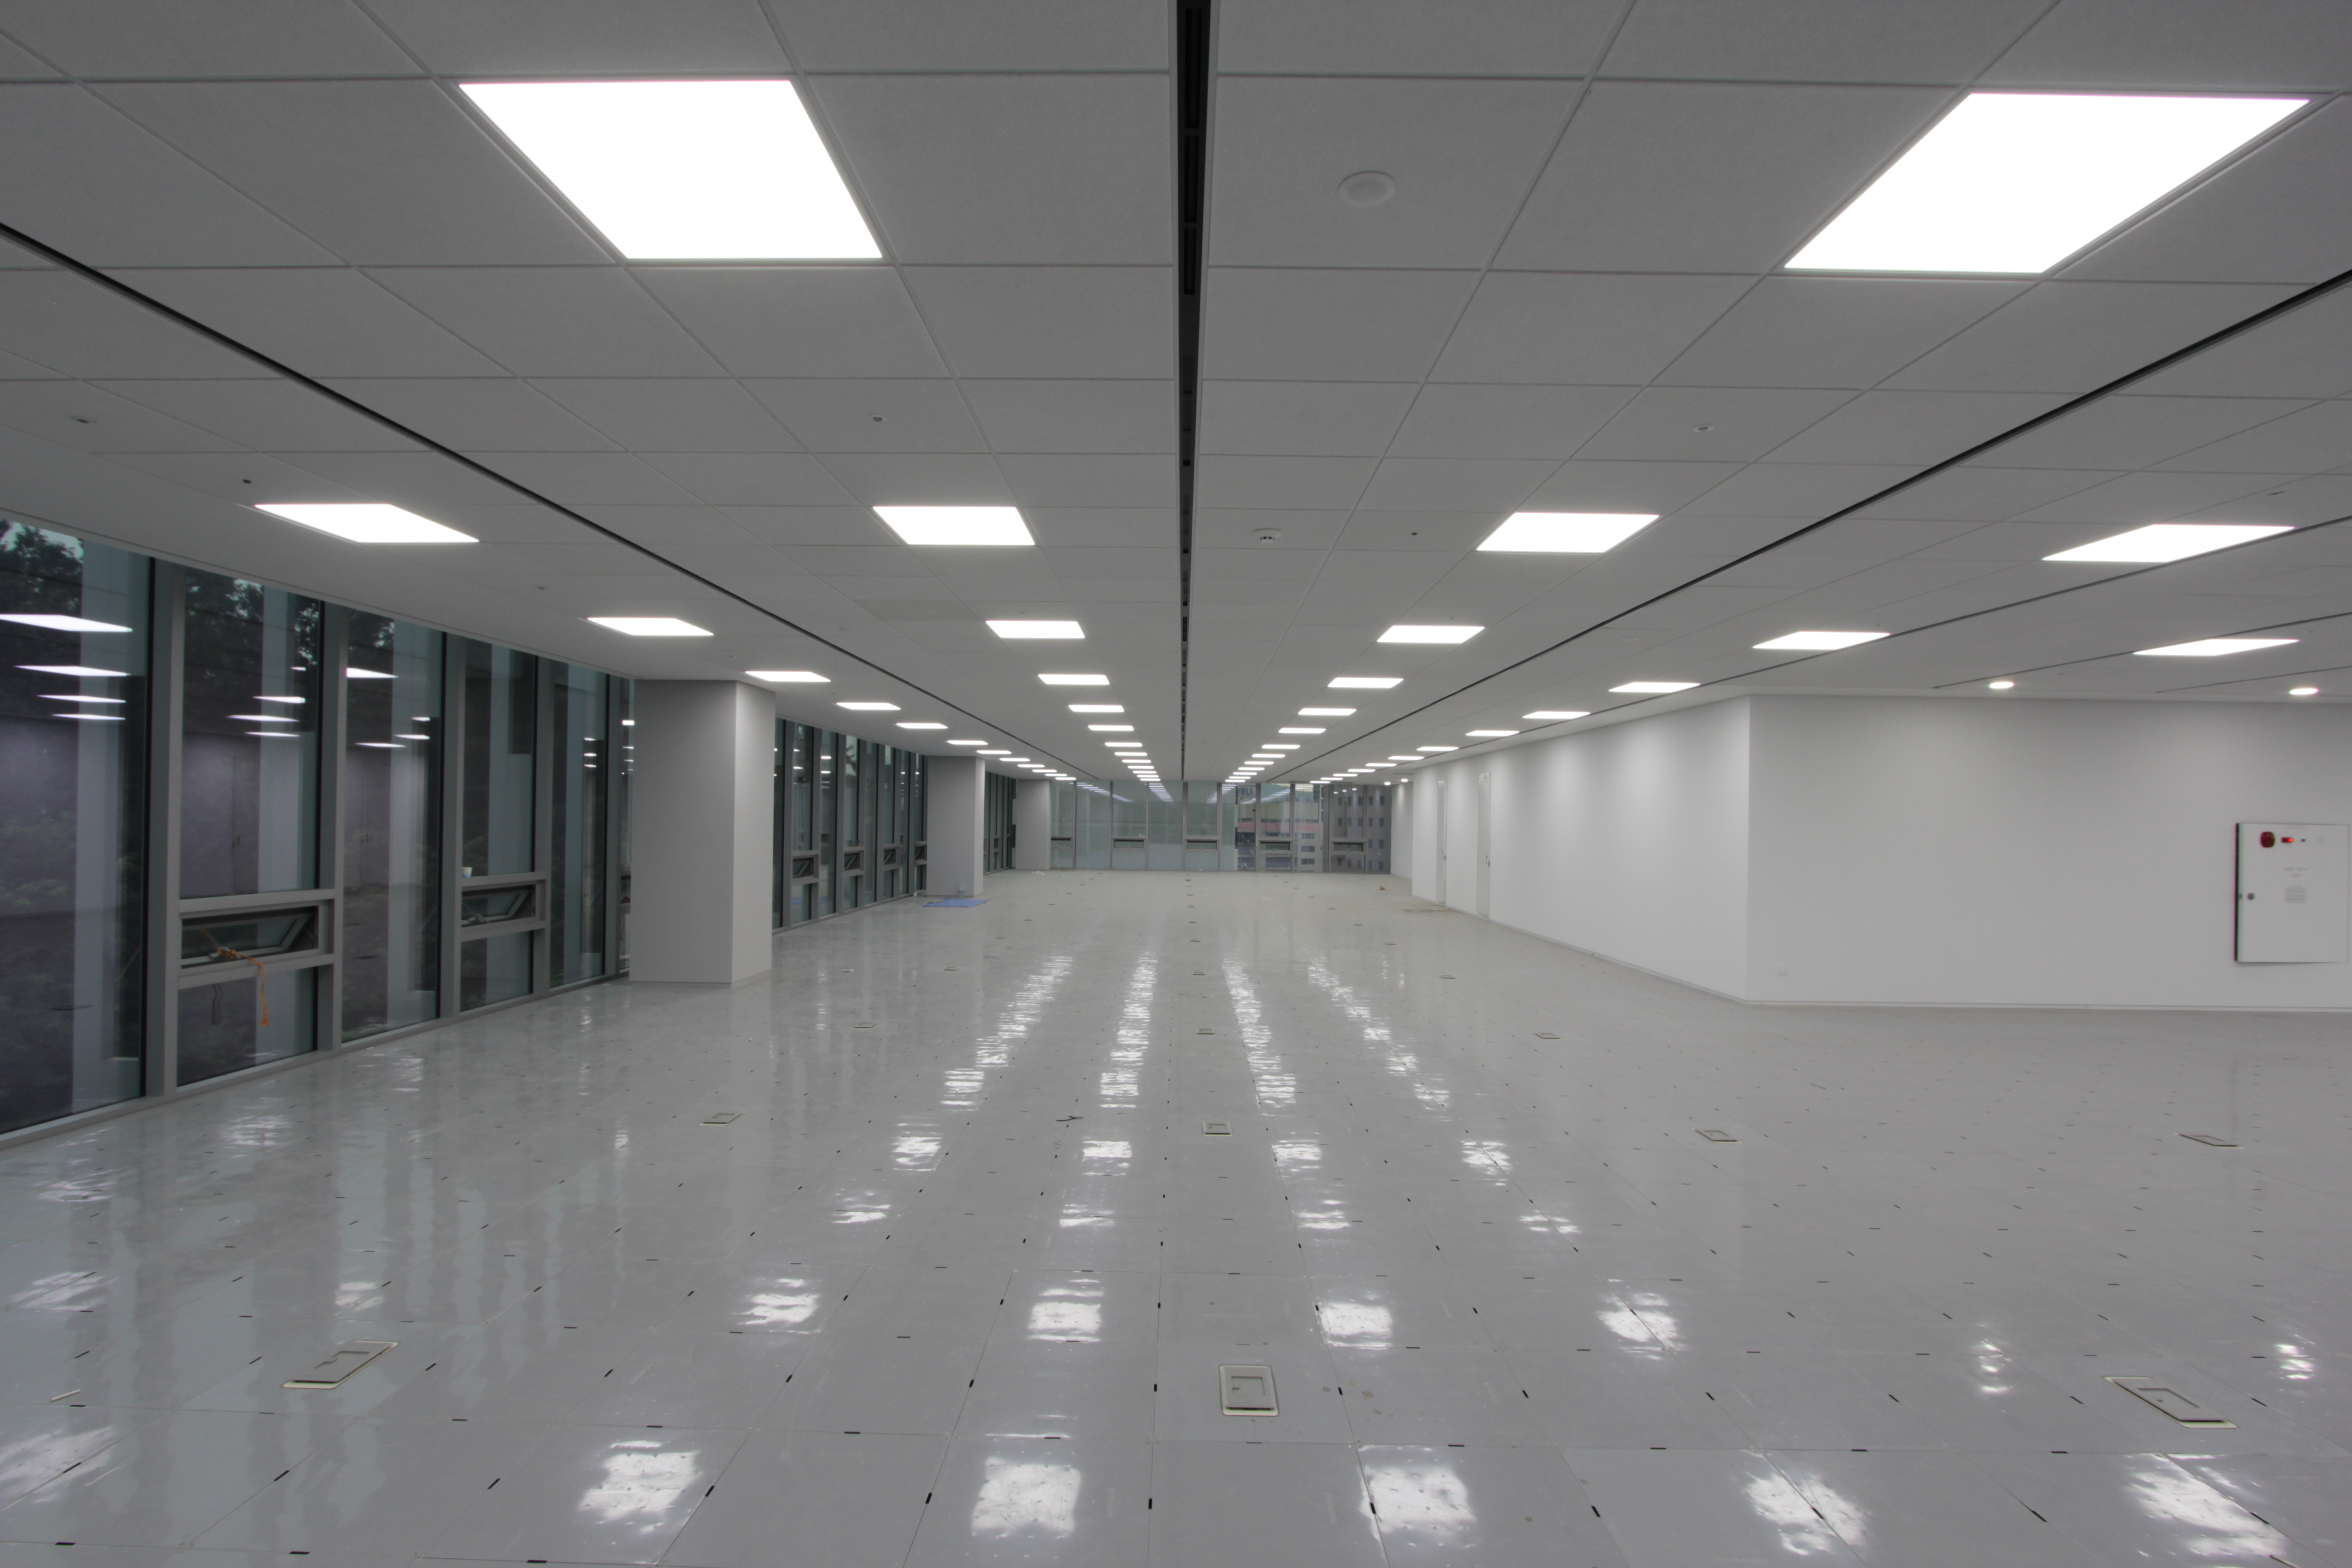 led-panel-lights.jpg